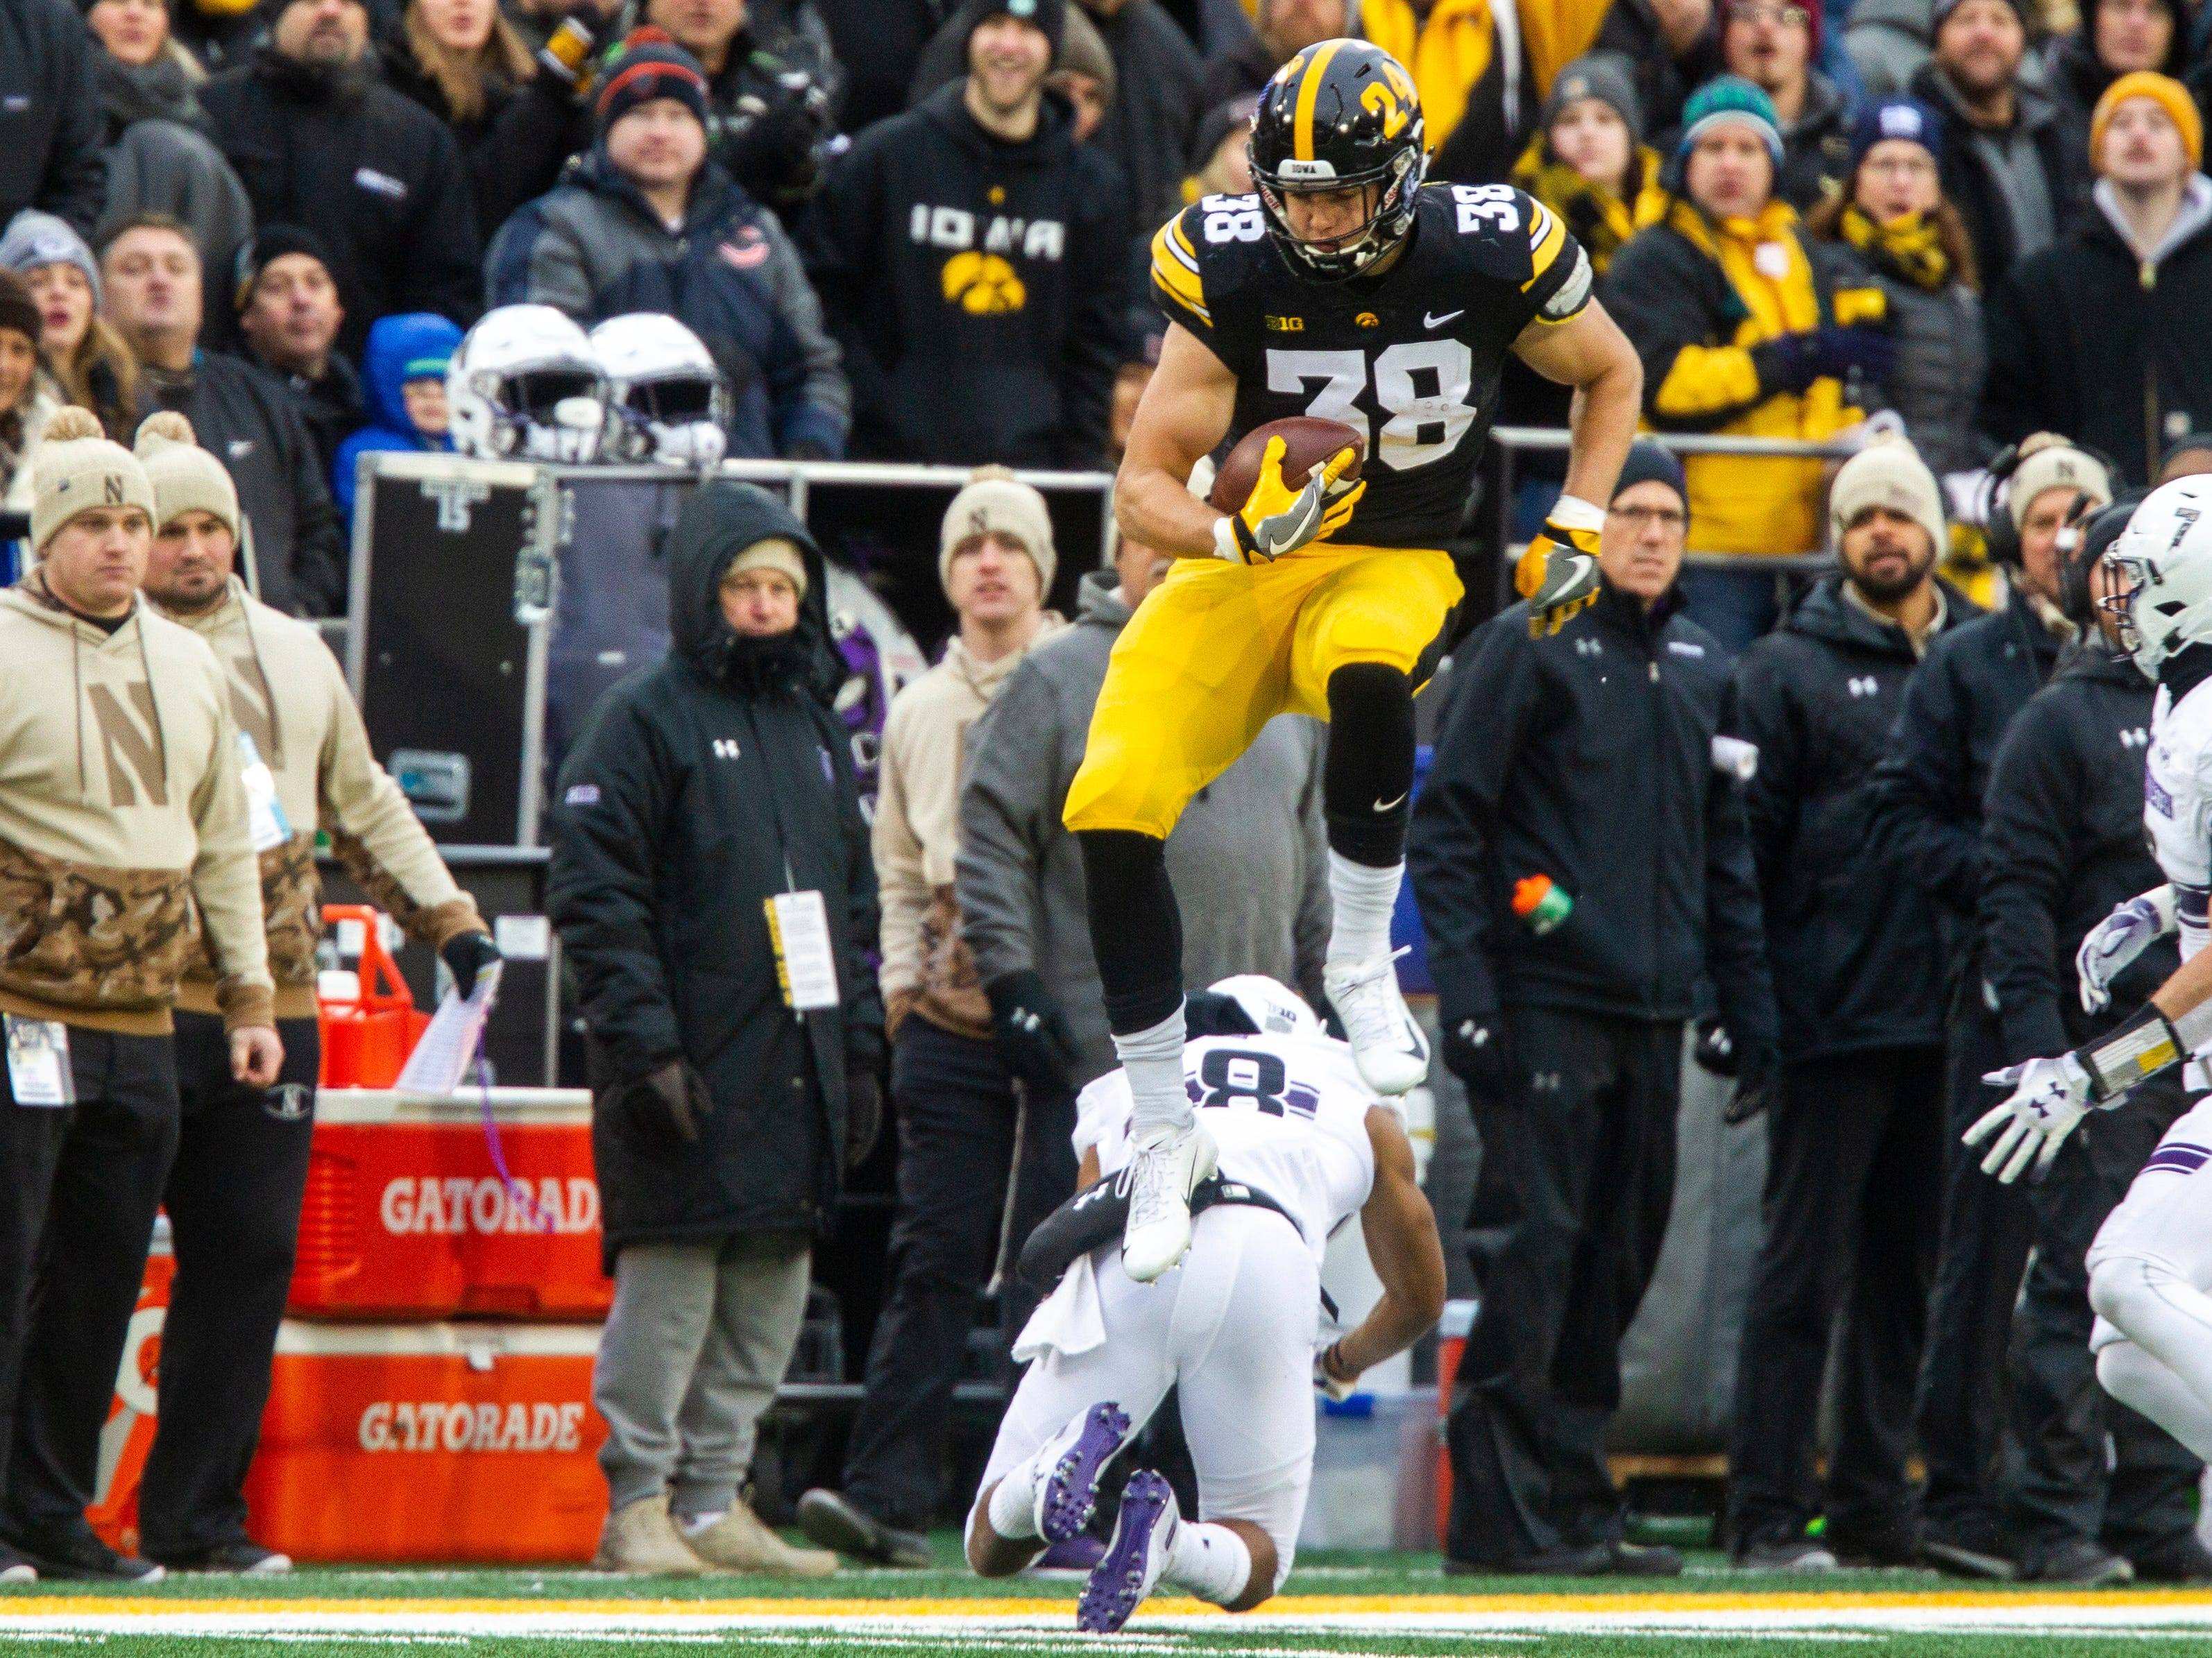 Iowa tight end T.J. Hockenson (38) jumps over a defender during a Big Ten Conference football game on Saturday, Nov. 10, 2018, at Kinnick Stadium in Iowa City.